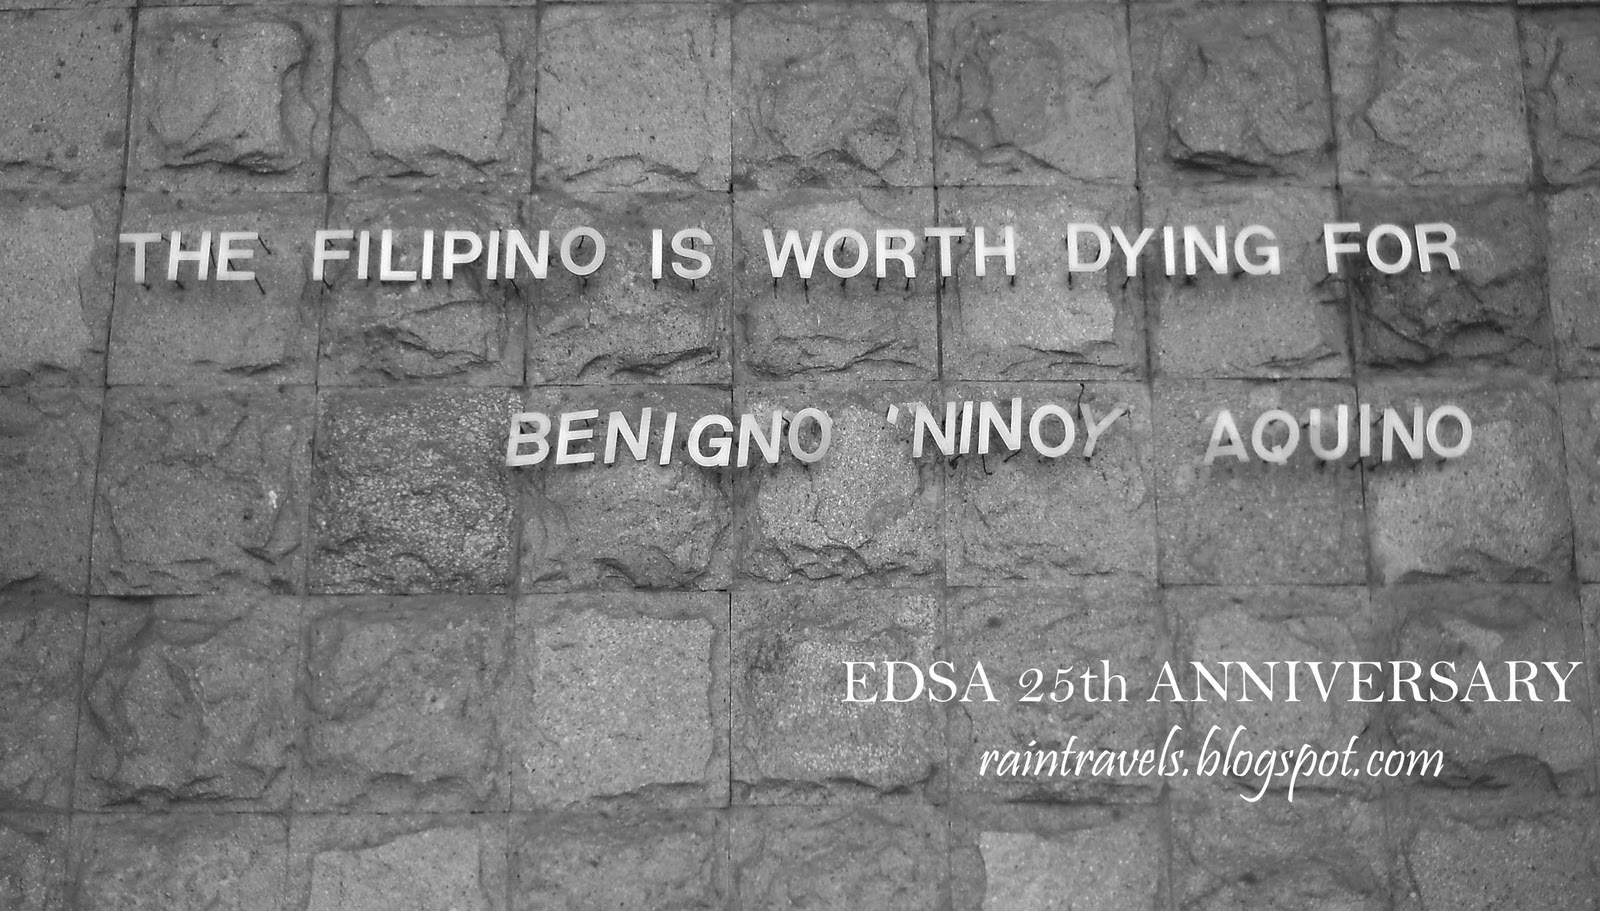 reaction paper edsa revolution anniversary I had gotten a hold of a white paper written by our professors on our  as we  celebrate the anniversary of the edsa revolution, we are called.